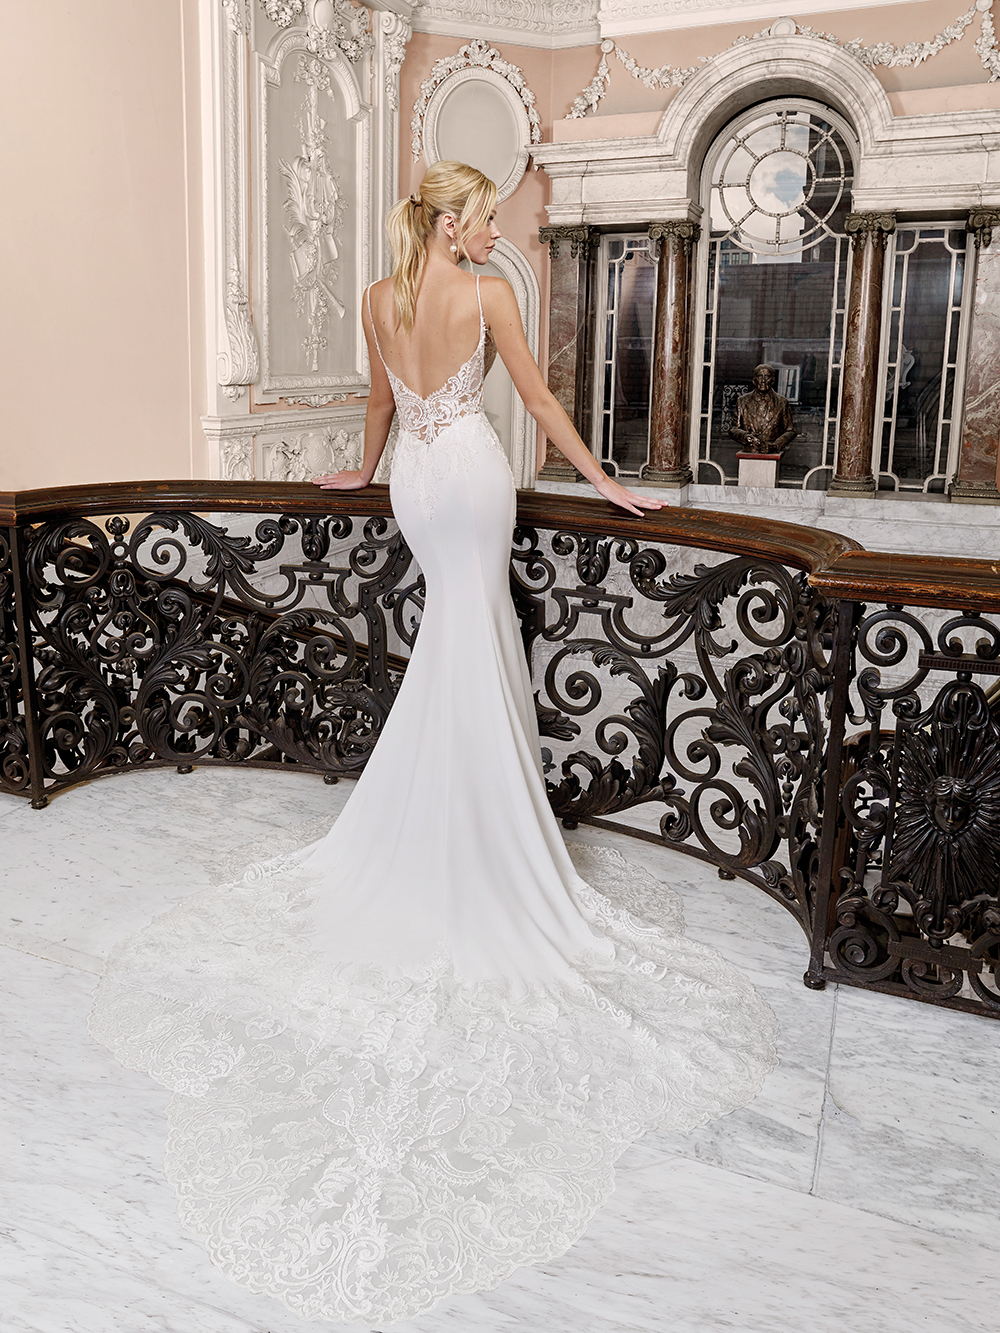 Ellis Bridals fit-and-flare gown